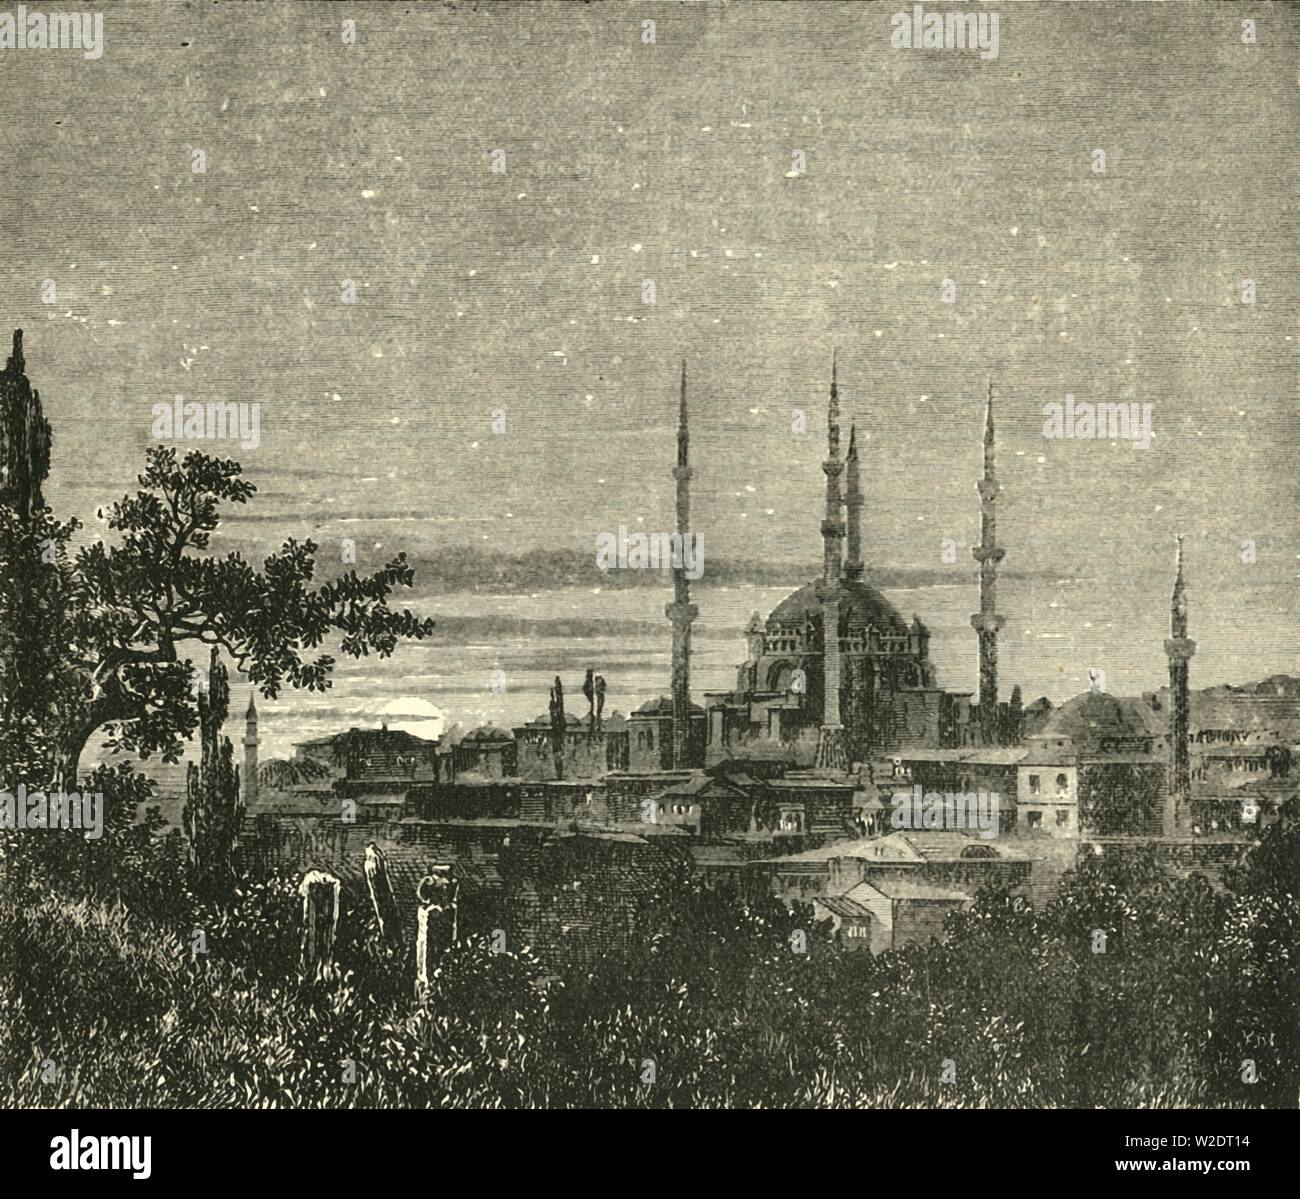 "'View in Adrianople - The Mosque of Selim II', 1890. Ottoman imperial  Selimiye Mosque in Edirne, Turkey, was commissioned by Sultan Selim II, and built by Mimar Sinan between 1568-1575.  From ""Cassell's Illustrated Universal History, Vol. III - The Middle Ages"", by Edmund Ollier. [Cassell and Company, Limited, London, Paris and Melbourne, 1890. ] - Stock Image"